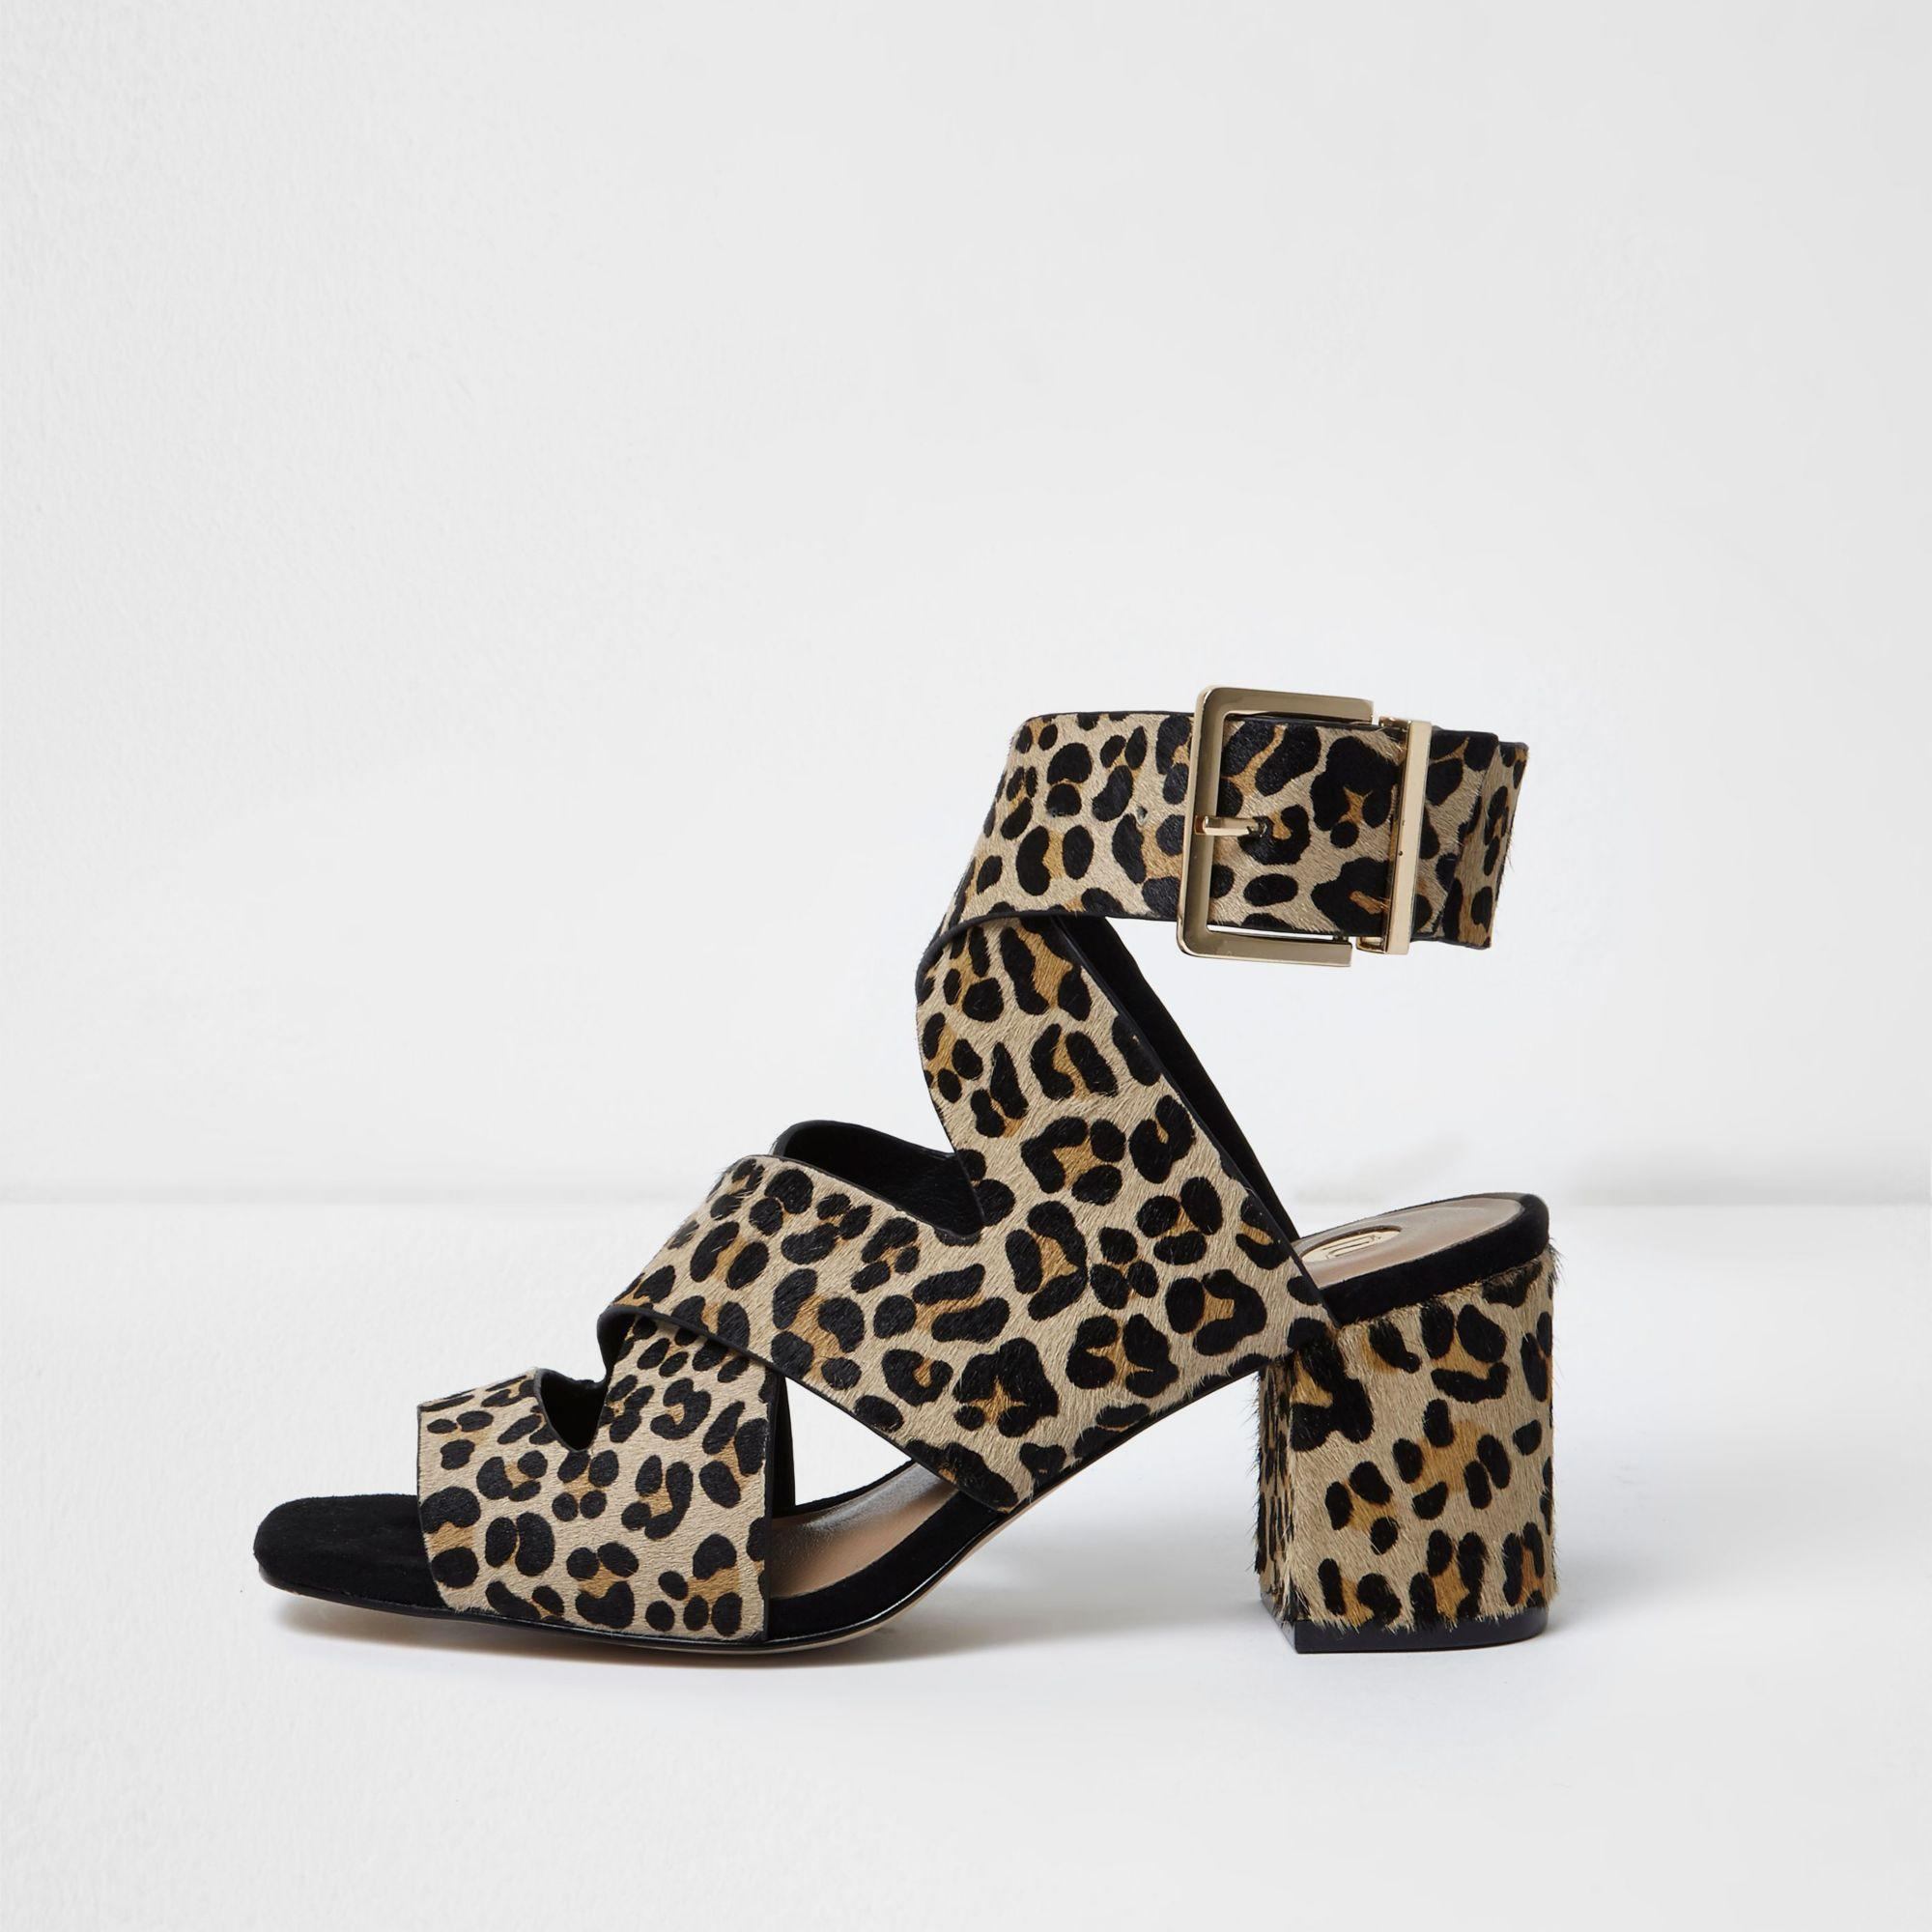 a539948a80d1 River Island Leopard Print Pony Hair Sandals in Brown - Lyst